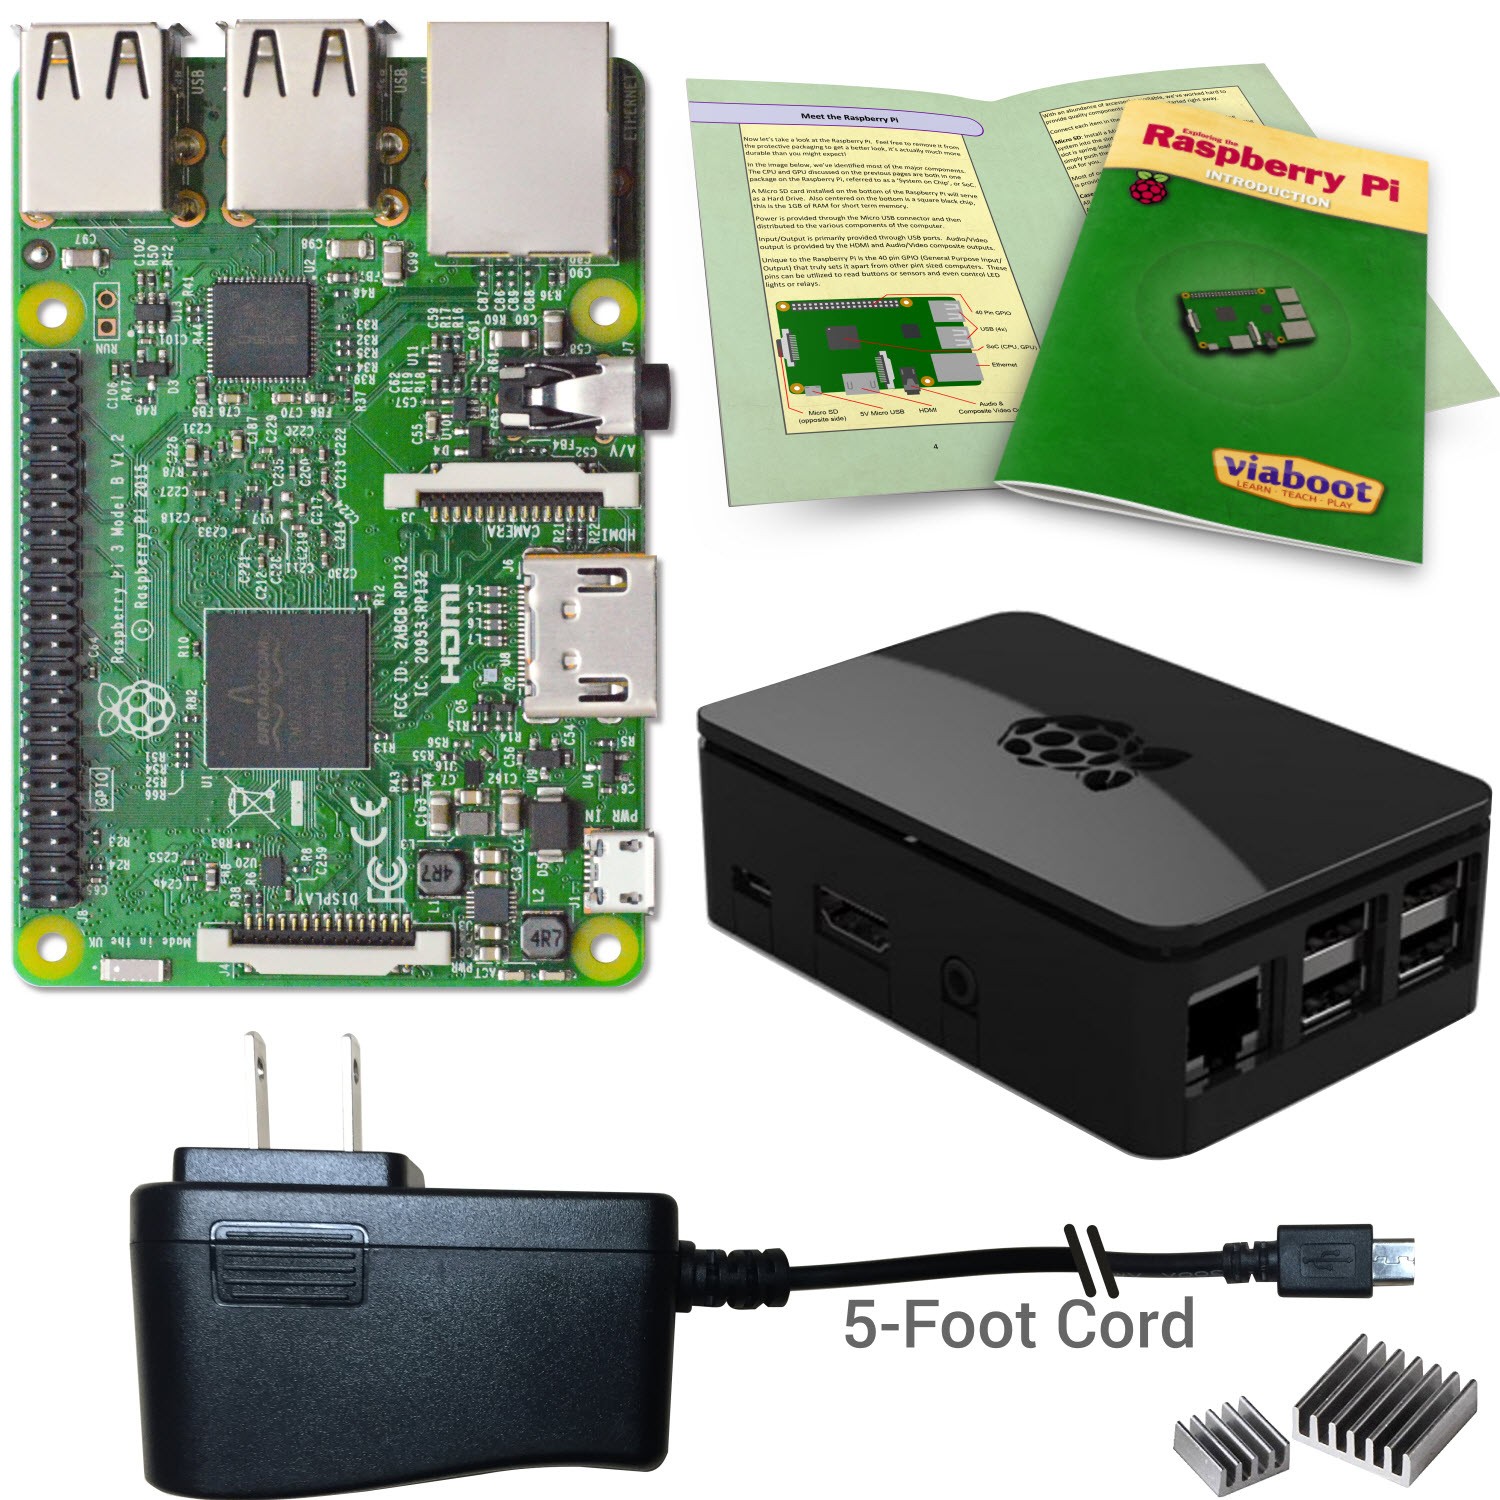 Viaboot Raspberry Pi 3 Power Kit with Premium Black Case